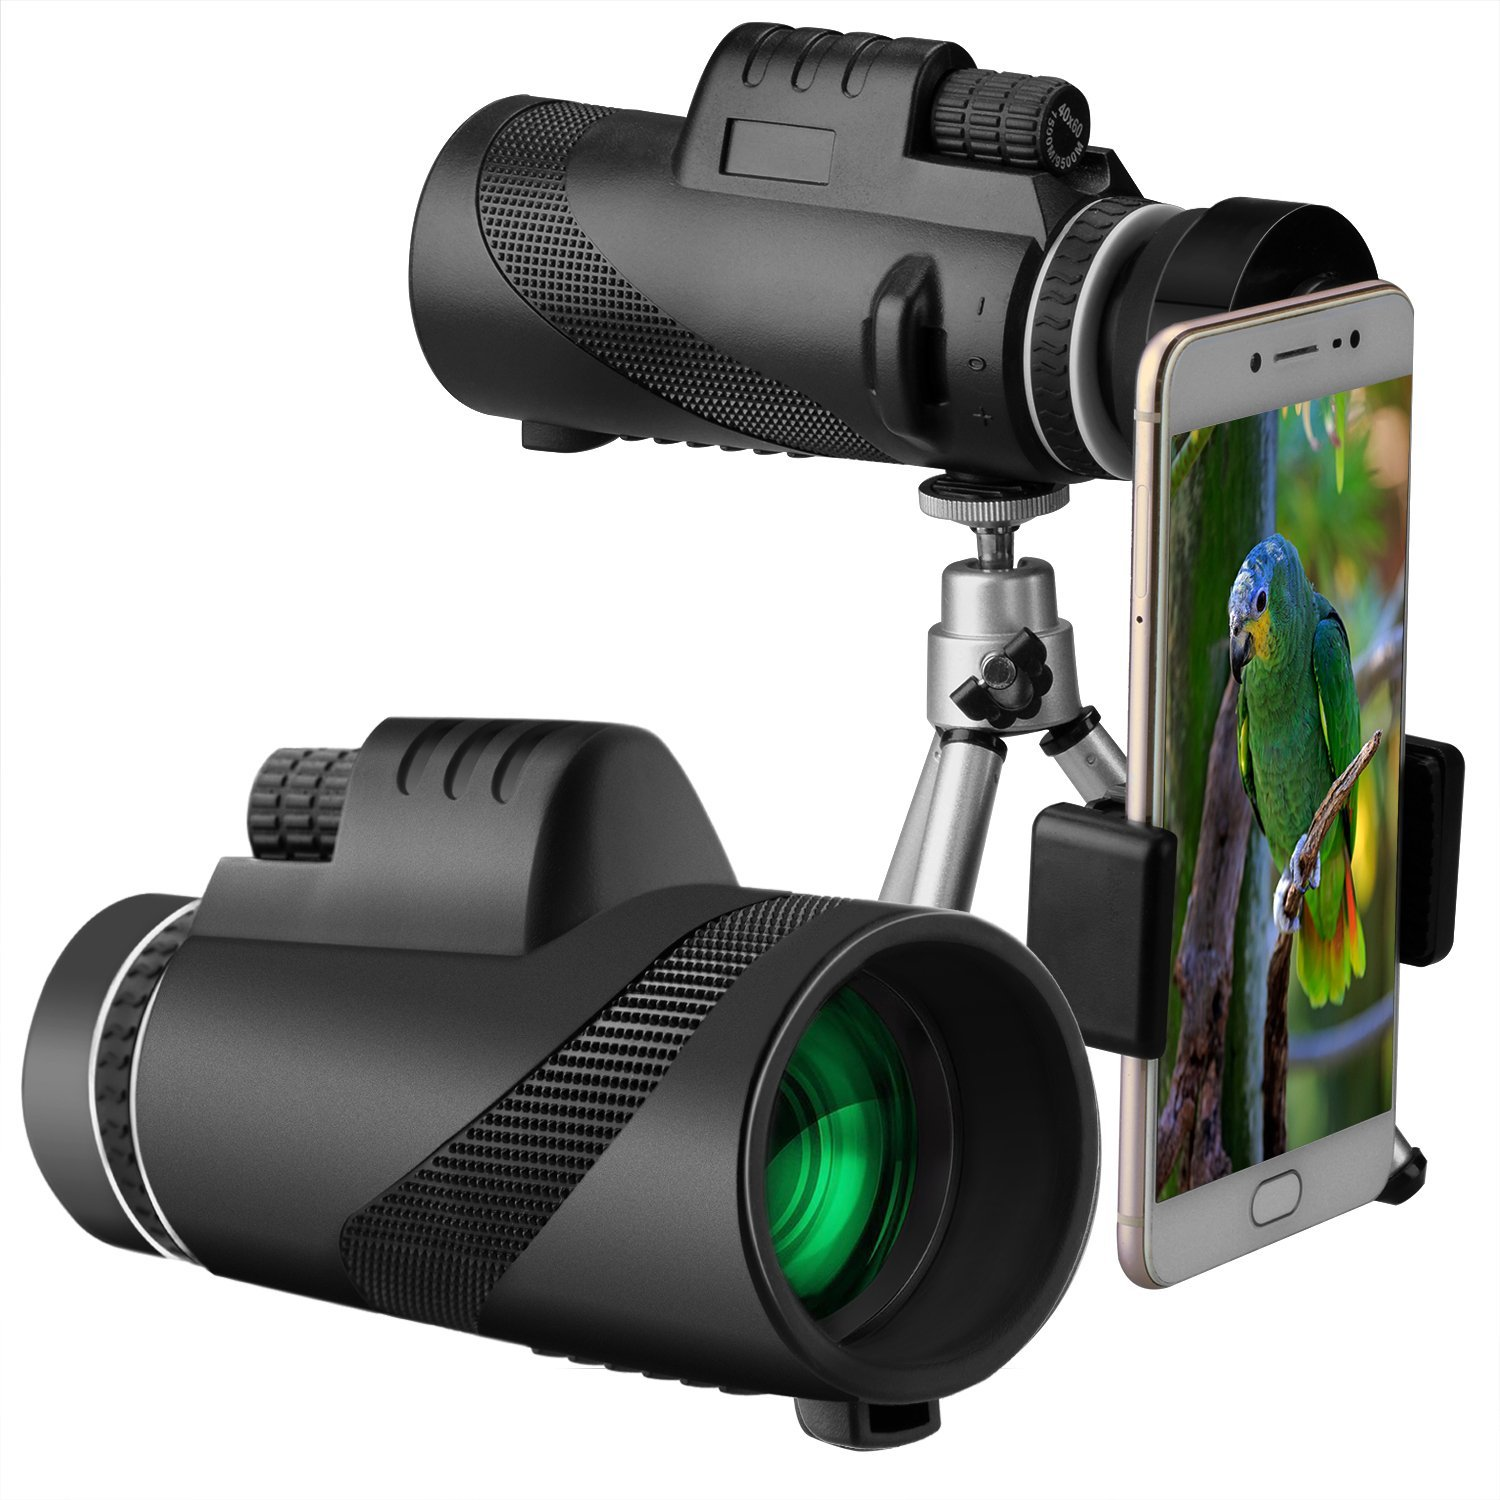 40X60 HD Monocular Telescope +Phone Adapter Waterproof Hunting Nitrogen Travel Camping Hiking Telescope Camping equipment RKOO33